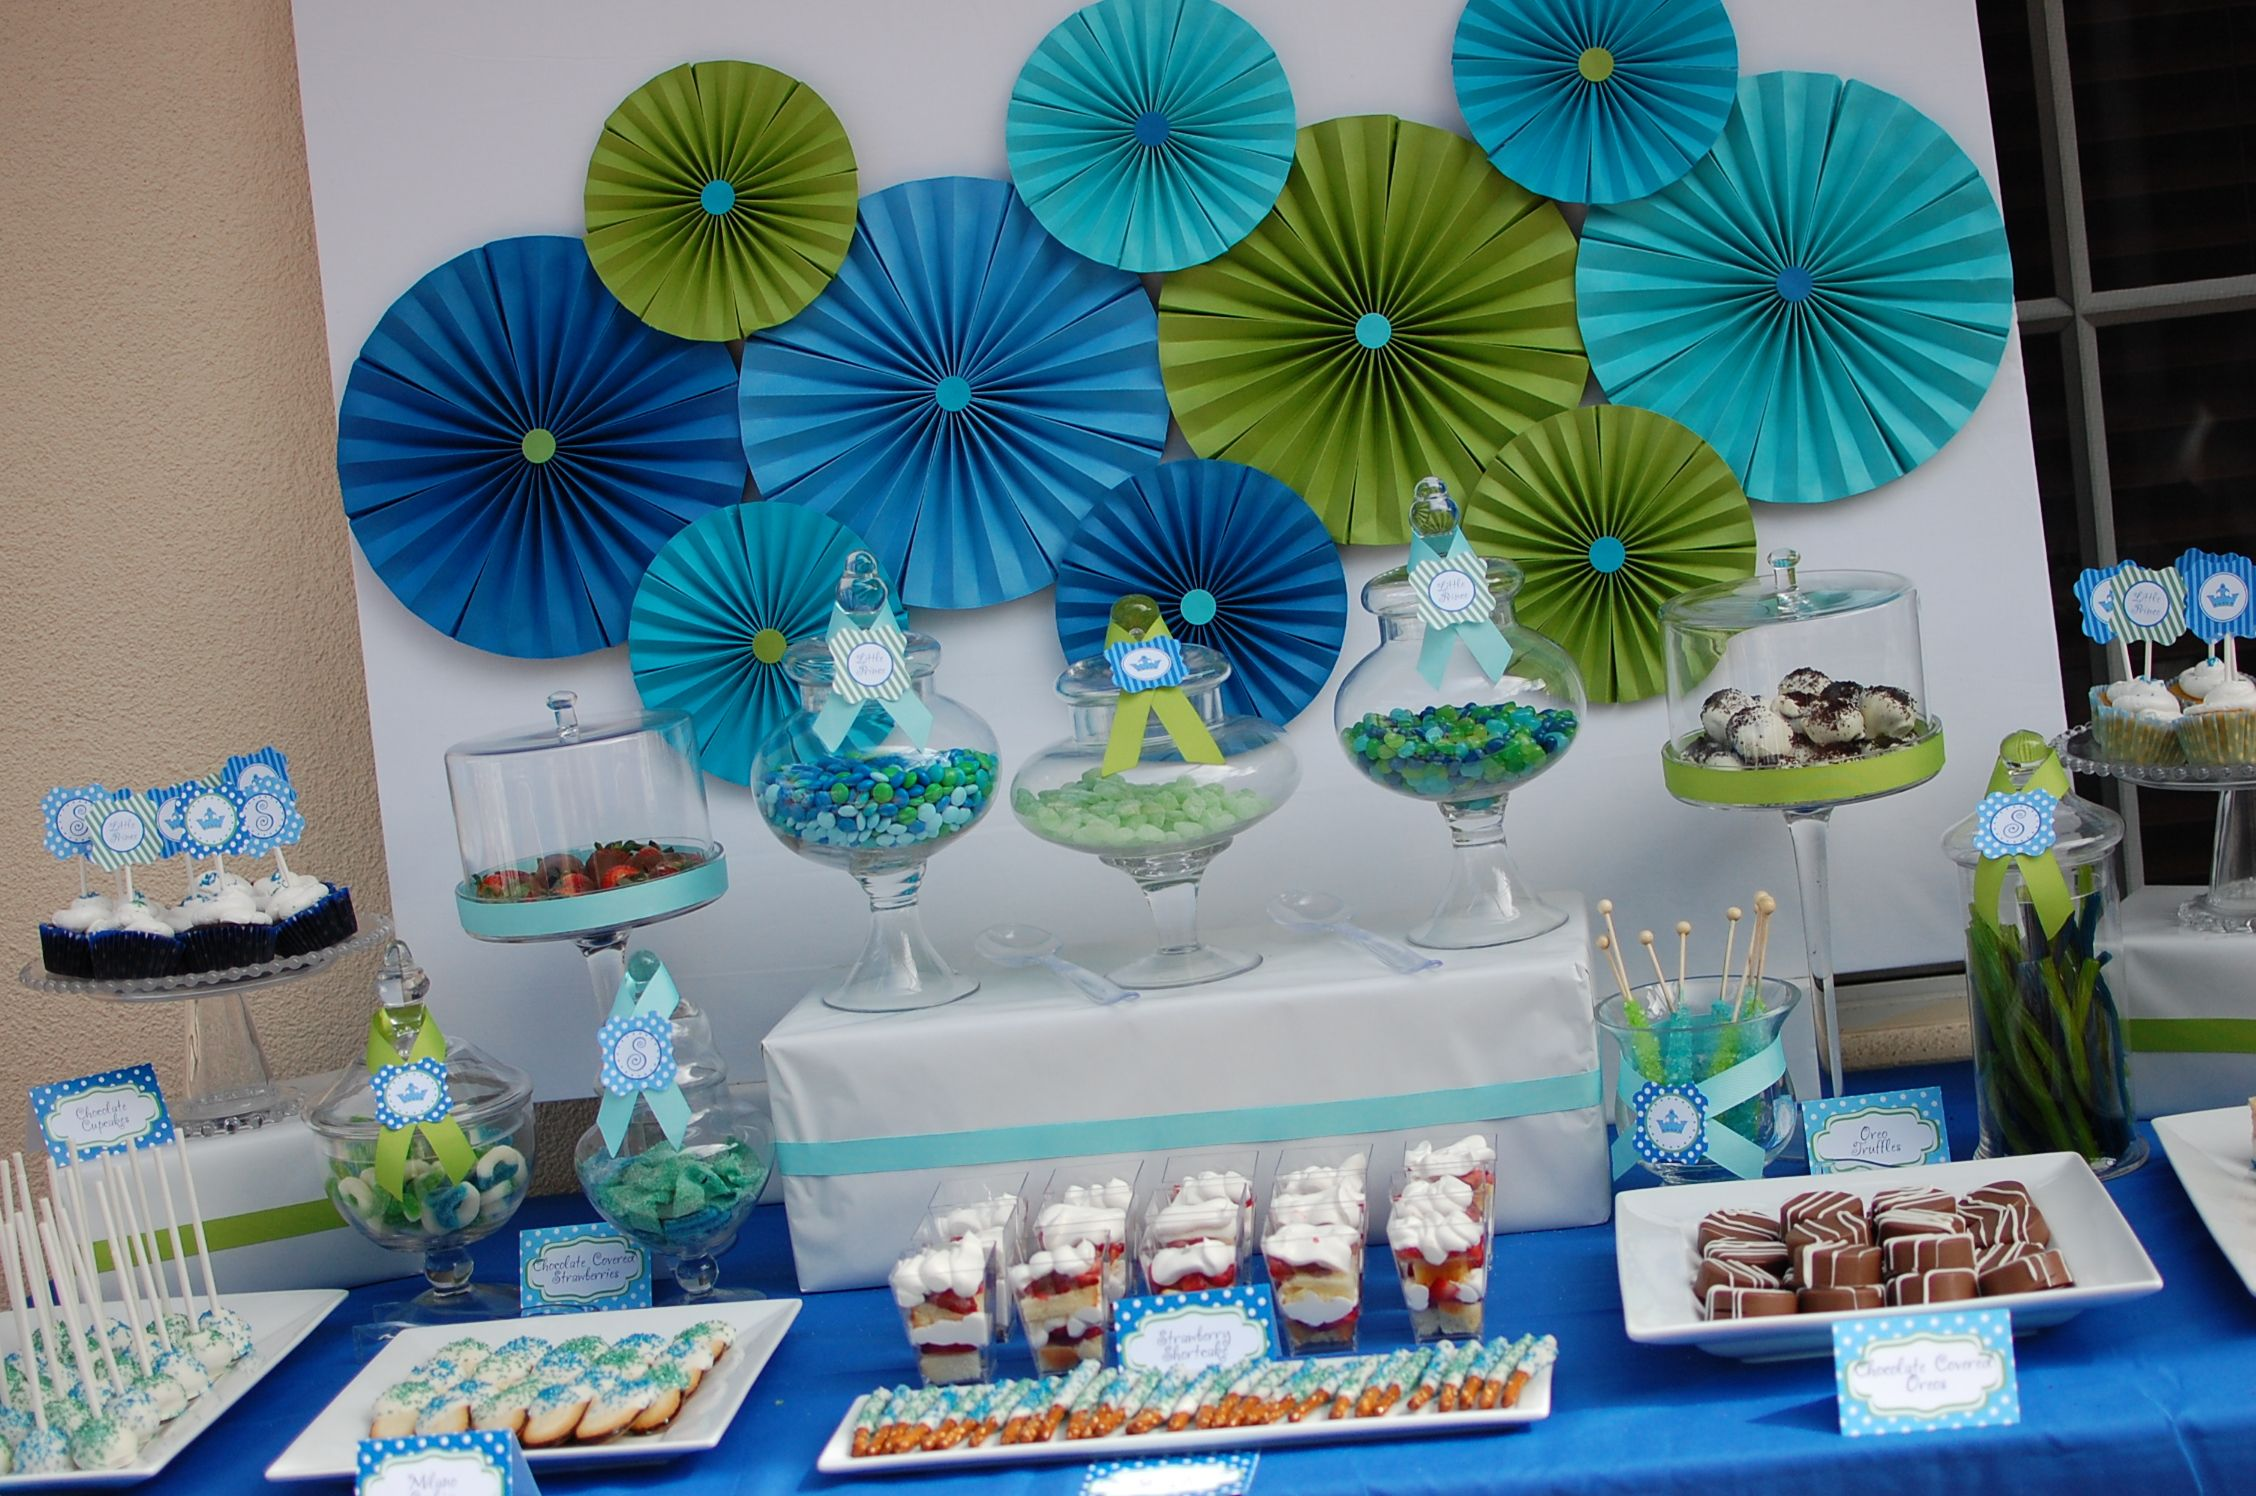 Royal Themed Baby Shower Ideas Gallery Baby Shower Ideas